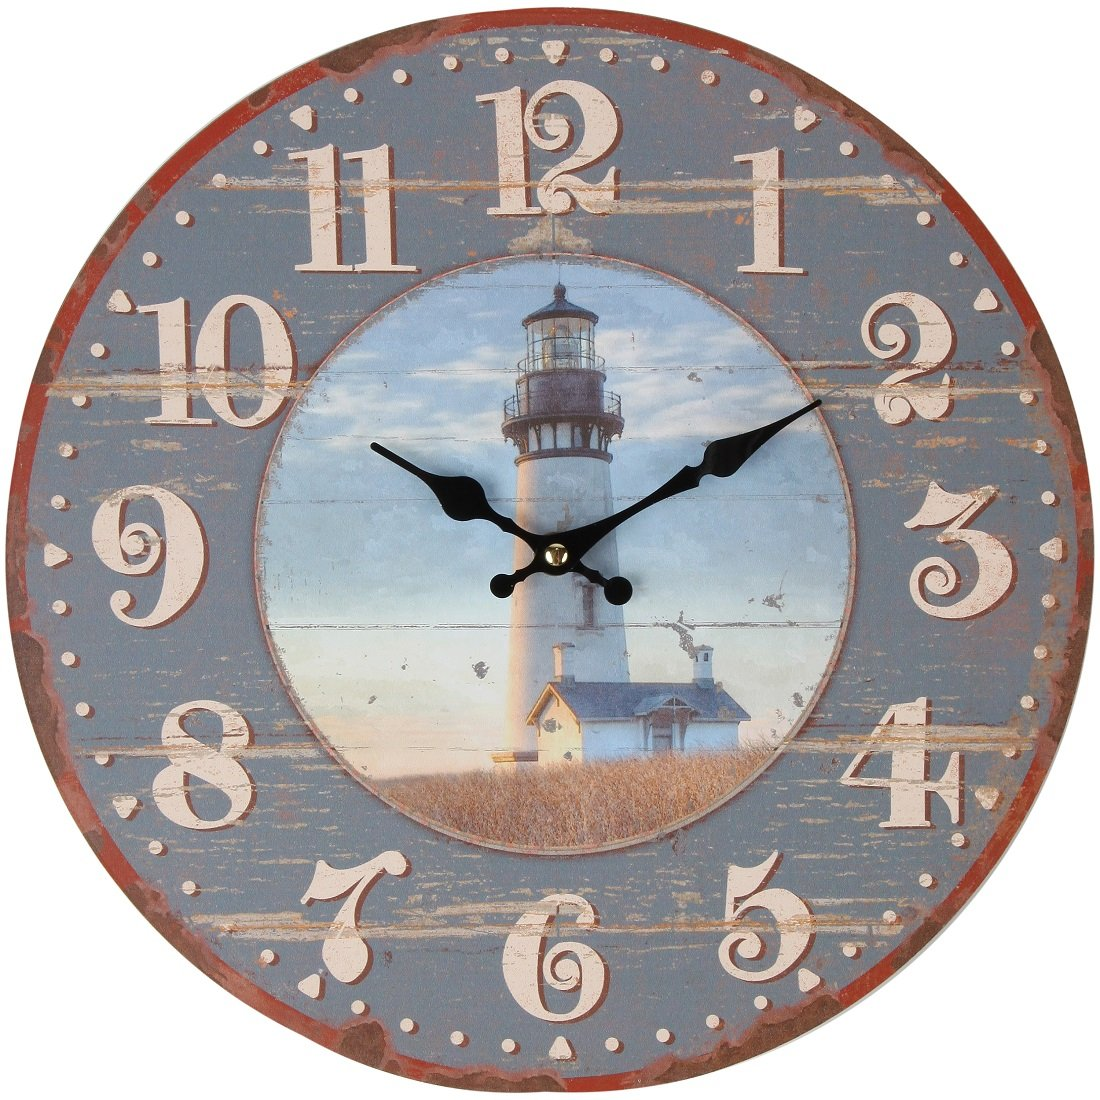 """Lily's Home Rustic Wood-Style Country Lighthouse Wall Clock, Fits Nautical or Country Décor, Battery-Powered with Quartz Movement, Ideal Gift for Lighthouse Fans (13"""" Diameter)"""